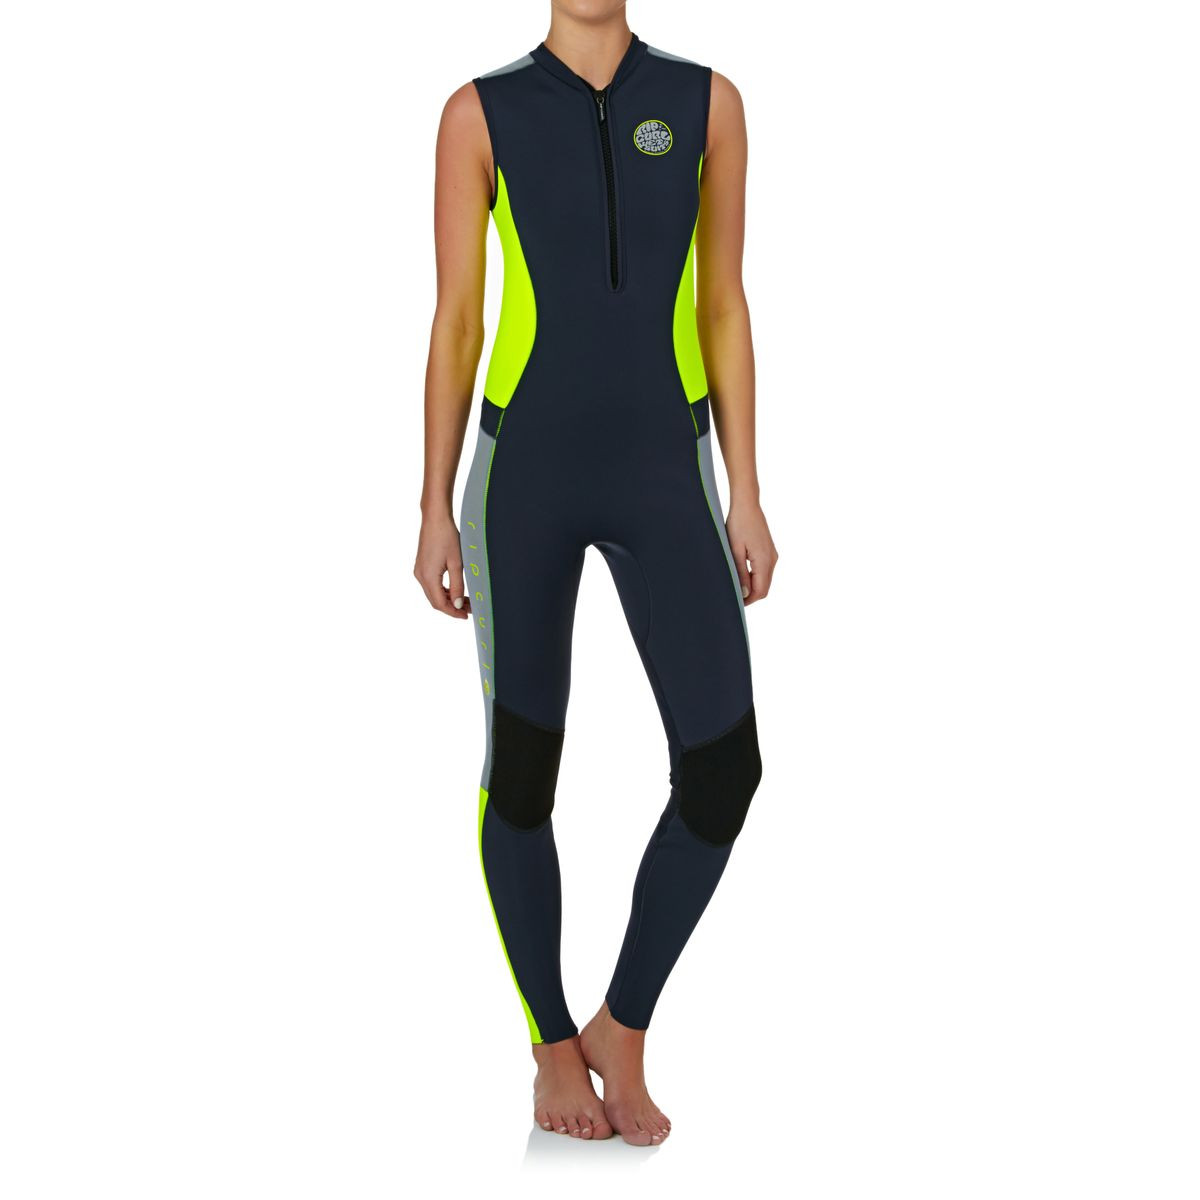 Rip Curl Womens G-bomb 1.5mm Front Zip Long Jane Wetsuit - Charcoal